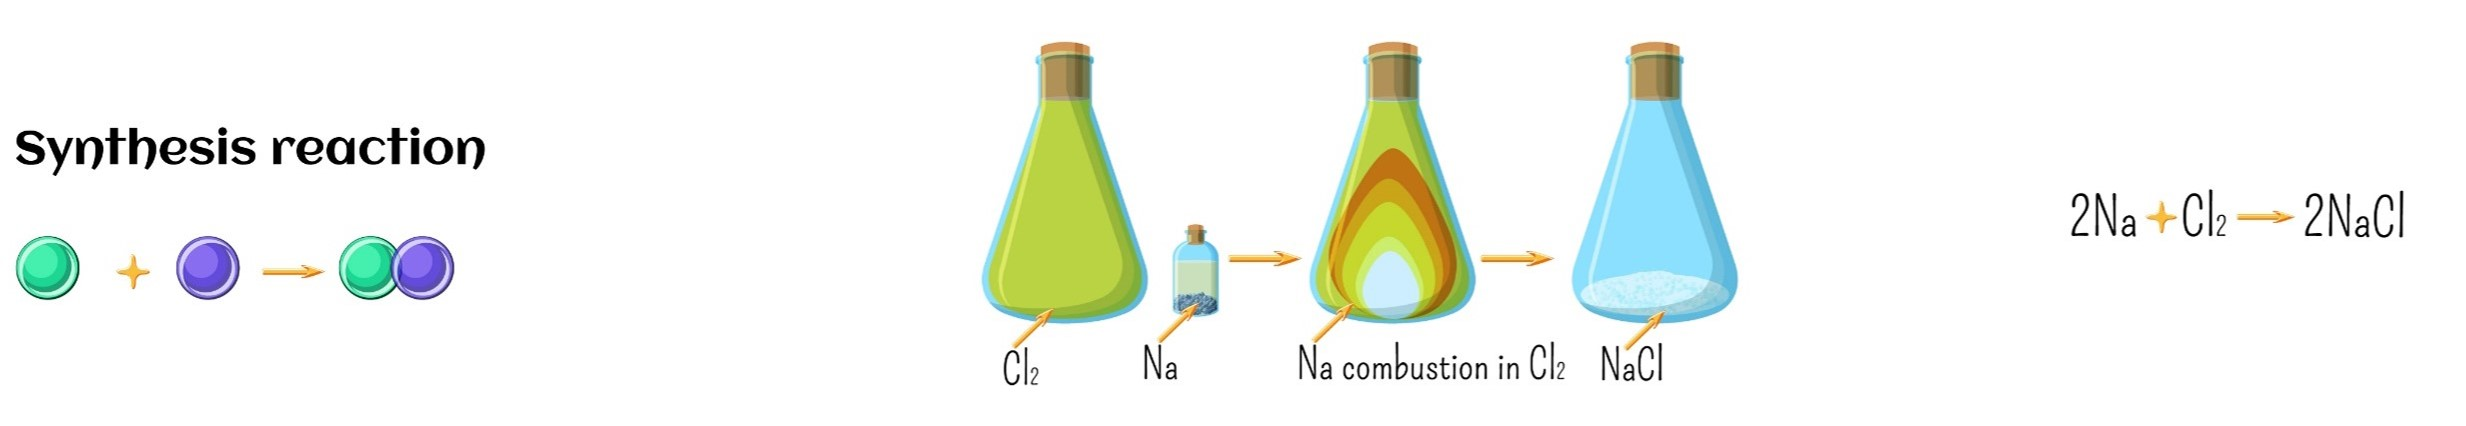 synthesis reaction - Section 5: Chemical Reactions - Rates, Type, and Energy